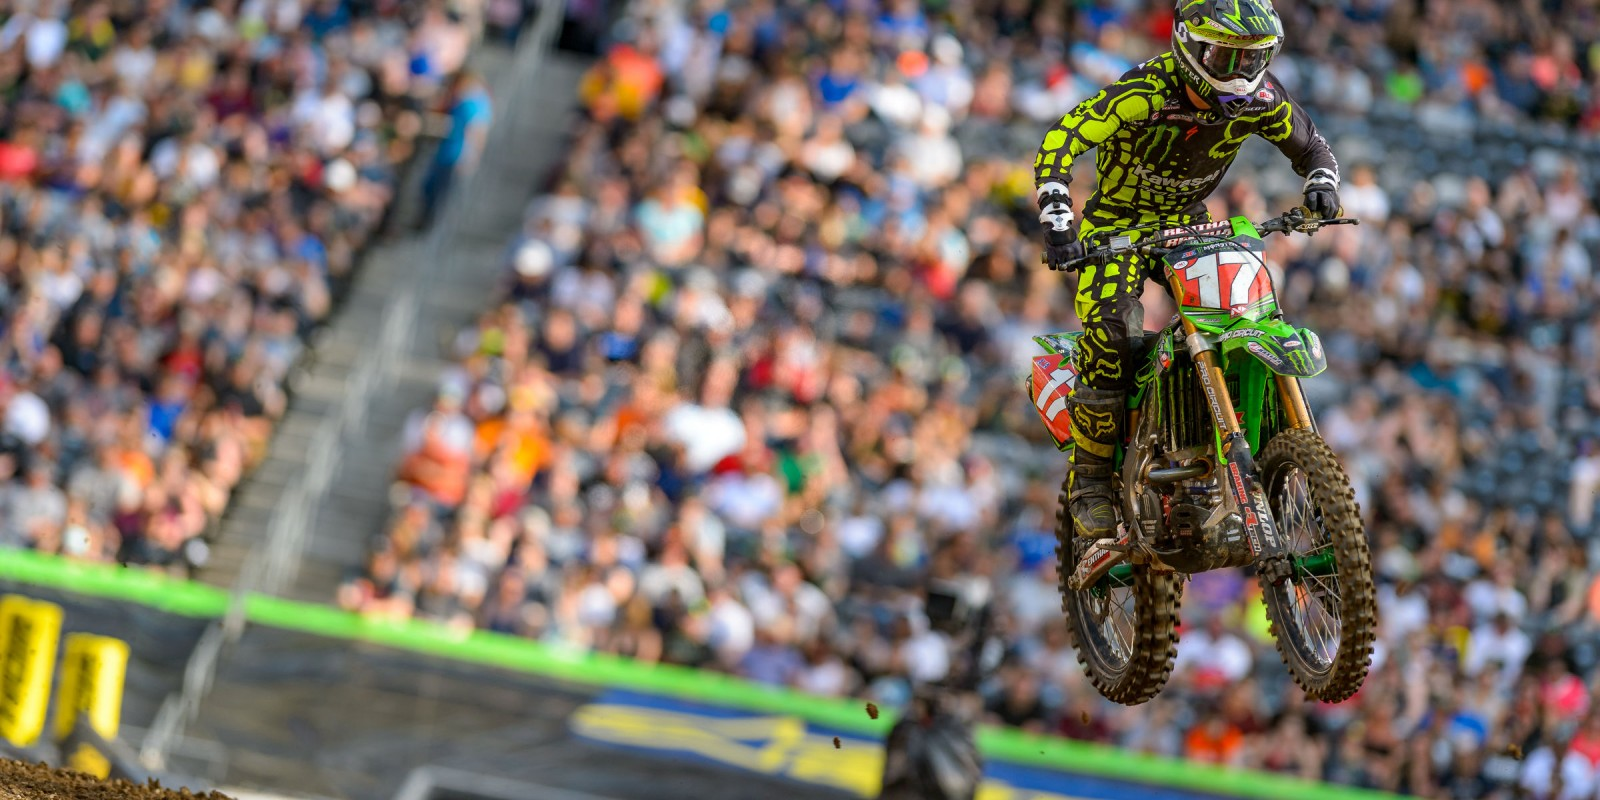 Monster athletes compete in the 2017 Supercross stop in East Rutherford, New Jersey